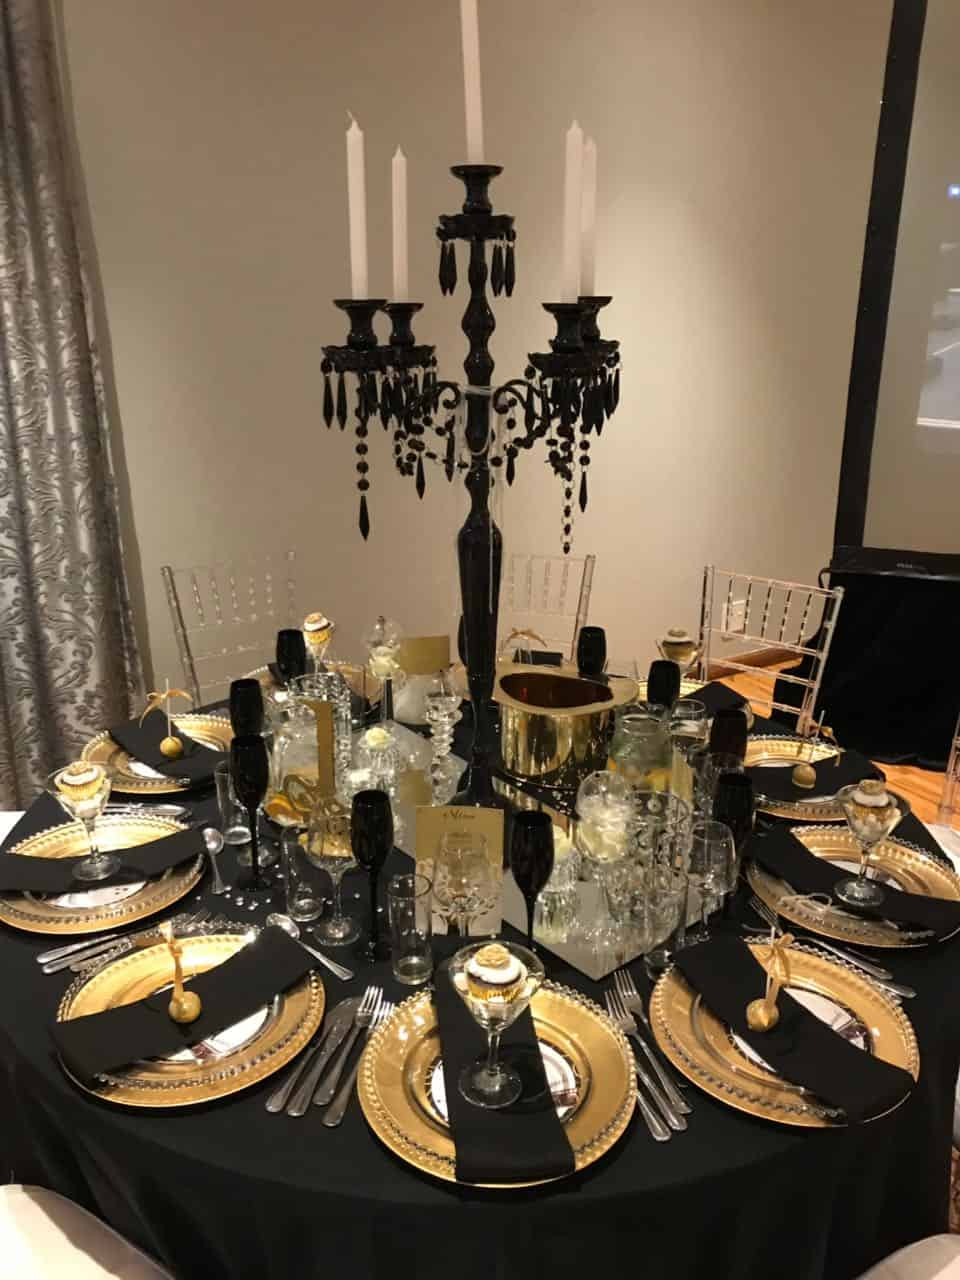 Gold Plates on black overlay with candle centrepiece